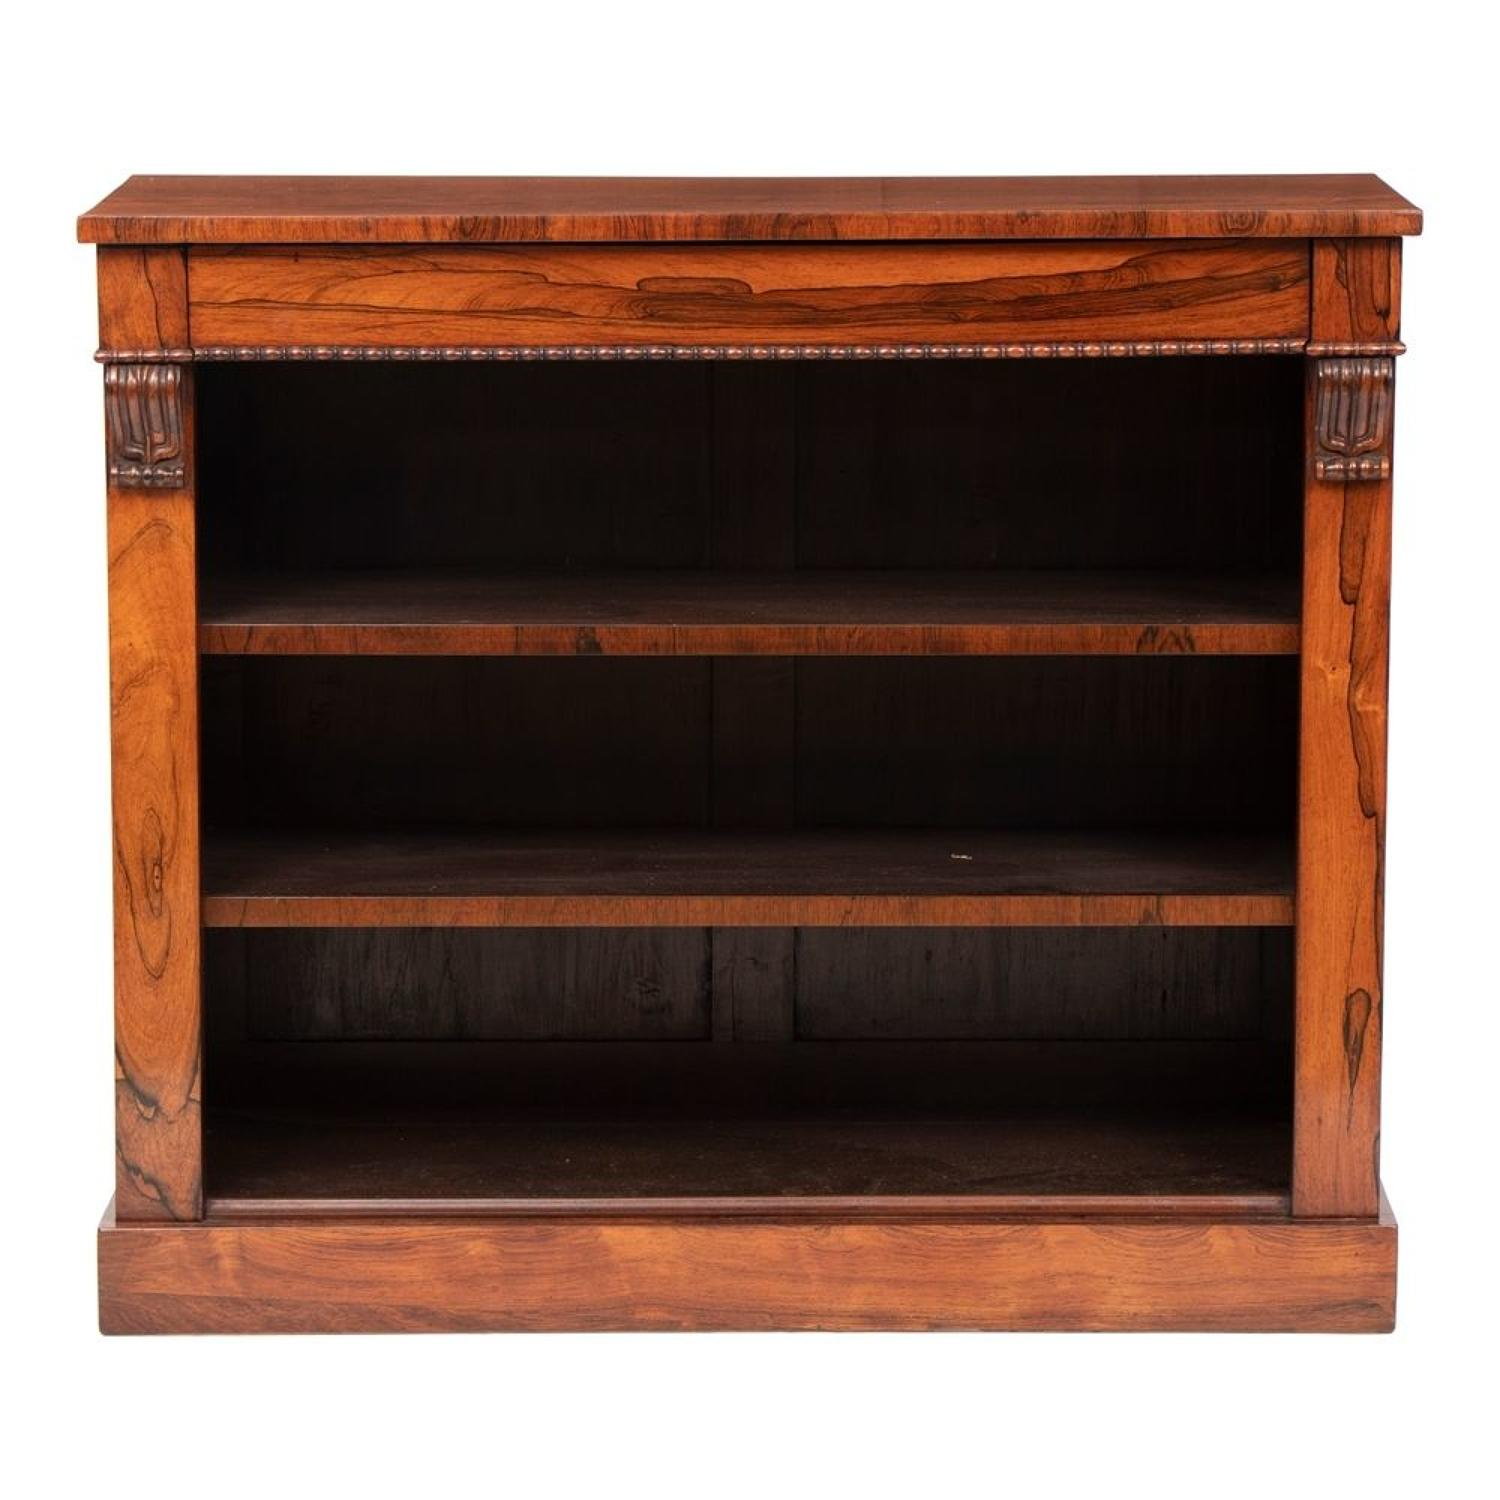 Antique Regency Rosewood Bookcase